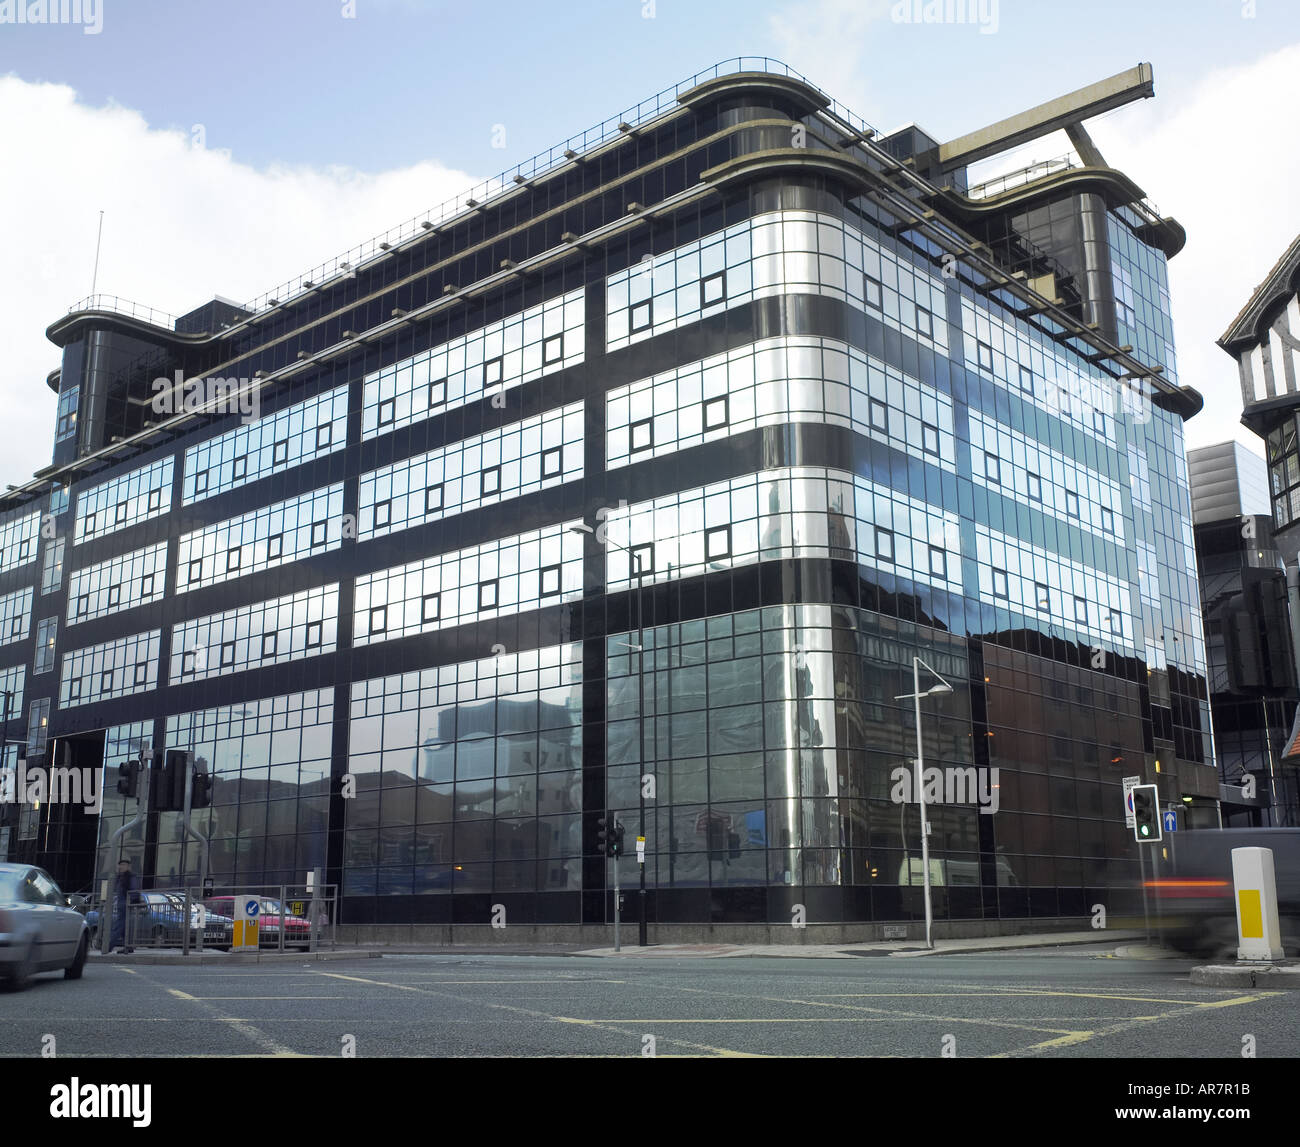 Daily Express building Manchester - Stock Image